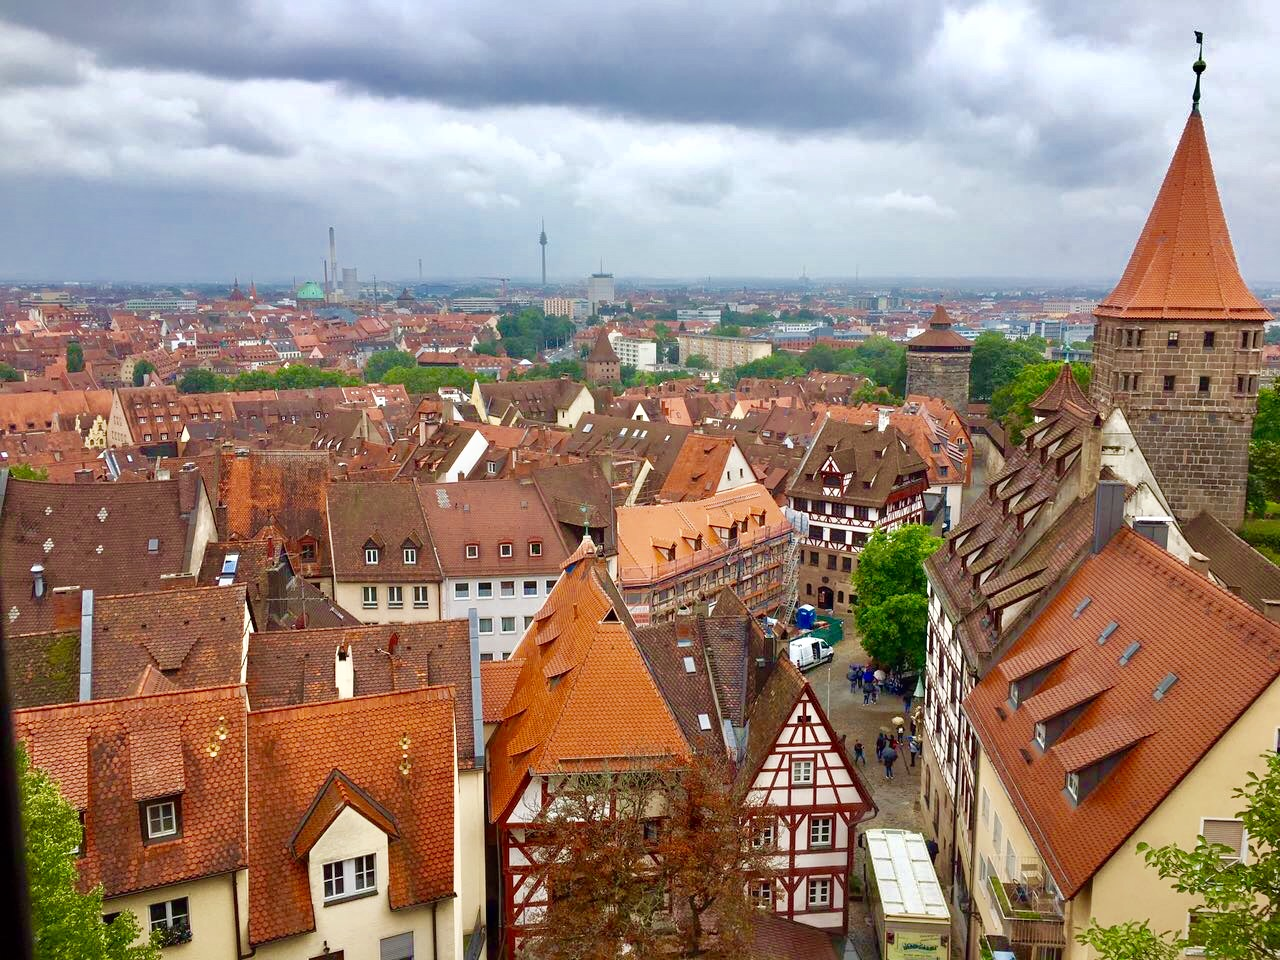 Nuremberg view from Nuremberg Castle